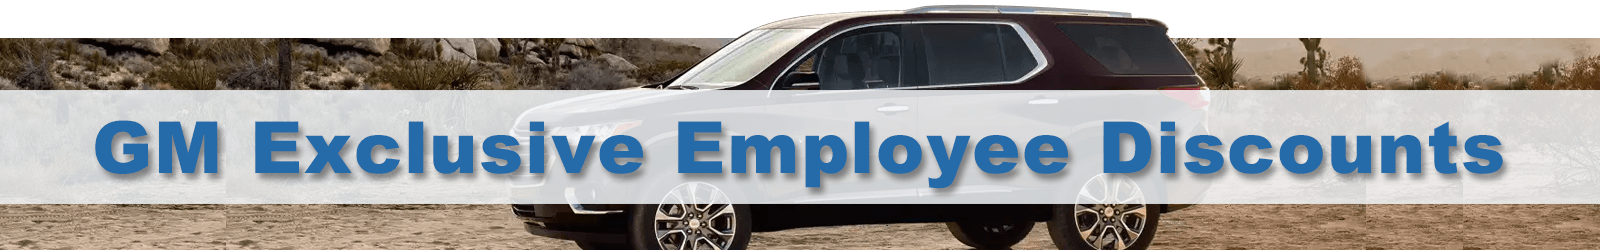 gm employee deals